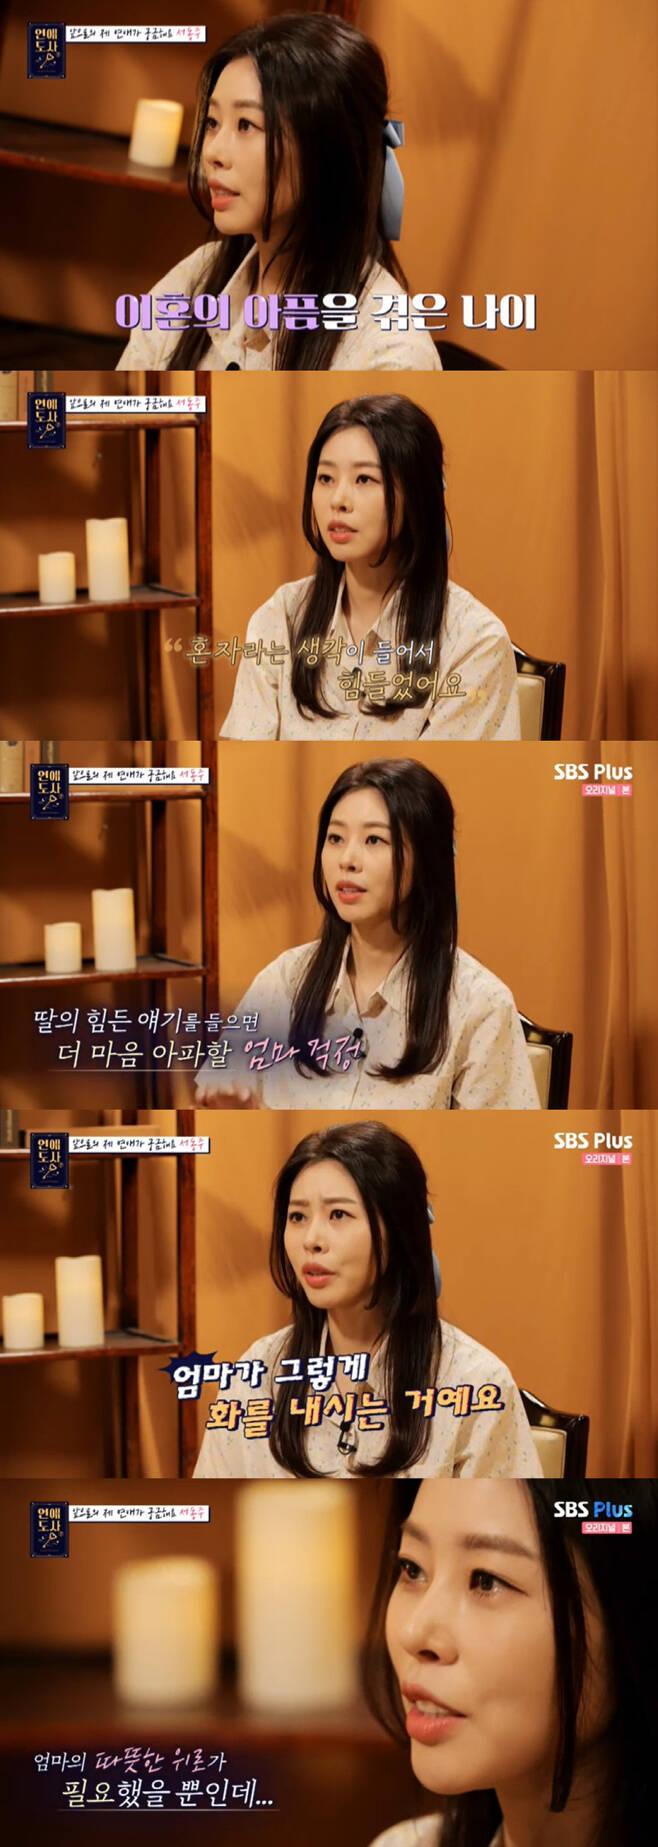 Love Dosa Seo Dong-joo showed tears as she hoped for the happiness of her mother Seo Jing-Hee.In the SBS Plus entertainment program Love Dosa broadcasted on the 4th, broadcaster and lawyer Seo Dong-joo appeared as a guest.On that day, Seo Dong-joo confessed frankly that he was riding a thumb: When was the last love?, I cant lie, Im always doing Date.Im riding a thumb, said the prodigy at the Seo Dong-joo, who defined it as a ride on a thumb, and Seo Dong-joo replied, Yes.Sajudo, who met Seo Dong-joo, said, I was not lucky overall, but there are times when I collapsed.It is time to have a lot of stories to break down good luck after 31 ~ 33 years old. So, Seo Dong-jo said, It was the age when I did the duty and my parents broke up.It was hard when it overlapped. It was a time when I felt strong Alone. After the divorce, Seo Dong-joo did a lot of work for his livelihood so that he had a dress trade with his friend at the flea market.But Seo Dong-joo couldnt tell the hard story because she was worried about her mother Seo Jing-Hee.Seo Dong-joo said, My mother has to be an Alone and have an independent life, and my mentality has collapsed, but I can not talk about it.My mother was so angry when I felt difficult, and she was angry and angry, and I was not talking to her well. Seo Dong-joo, who met the next psychological instructor, painted a family picture in front of the psychological master.Seo Dong-joo painted his mother, grandmother, brother, brothers wife and dog in the picture, but his father Seo Se-won did not draw it.The psychologist asked, Did you want to do it? And Seo Dong-jo replied, I did not want to do it, but now I have another family, so I thought I belonged there.The psychologist then asked, Who did you care about when you painted? And Seo Dong-joo responded Mom and showed tears.Seo Dong-joo painted her mother most carefully when she painted her picture, so she talked about her mother to herself.Seo Dong-joo, who talked to a psychologist and did not thin